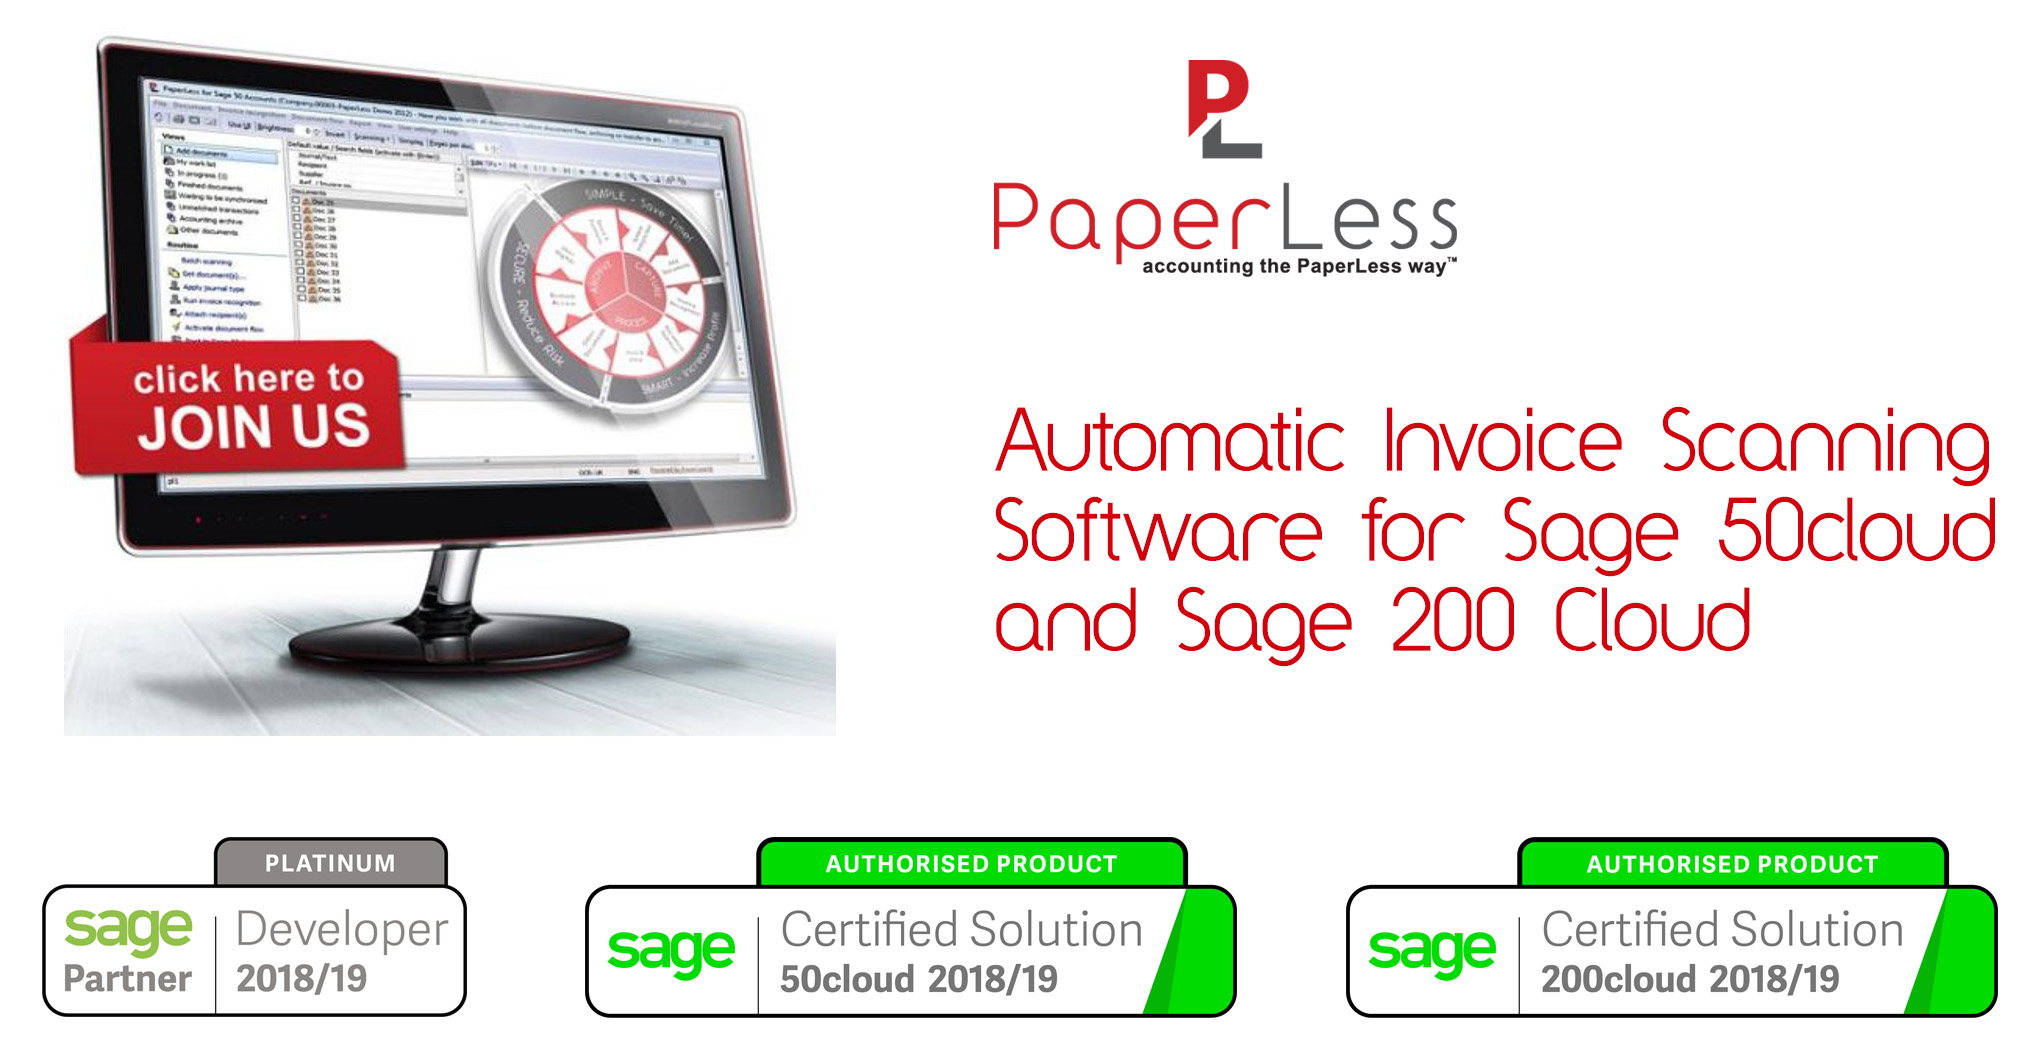 Click here to find out more about Automatic Invoice Scanning Software for Sage